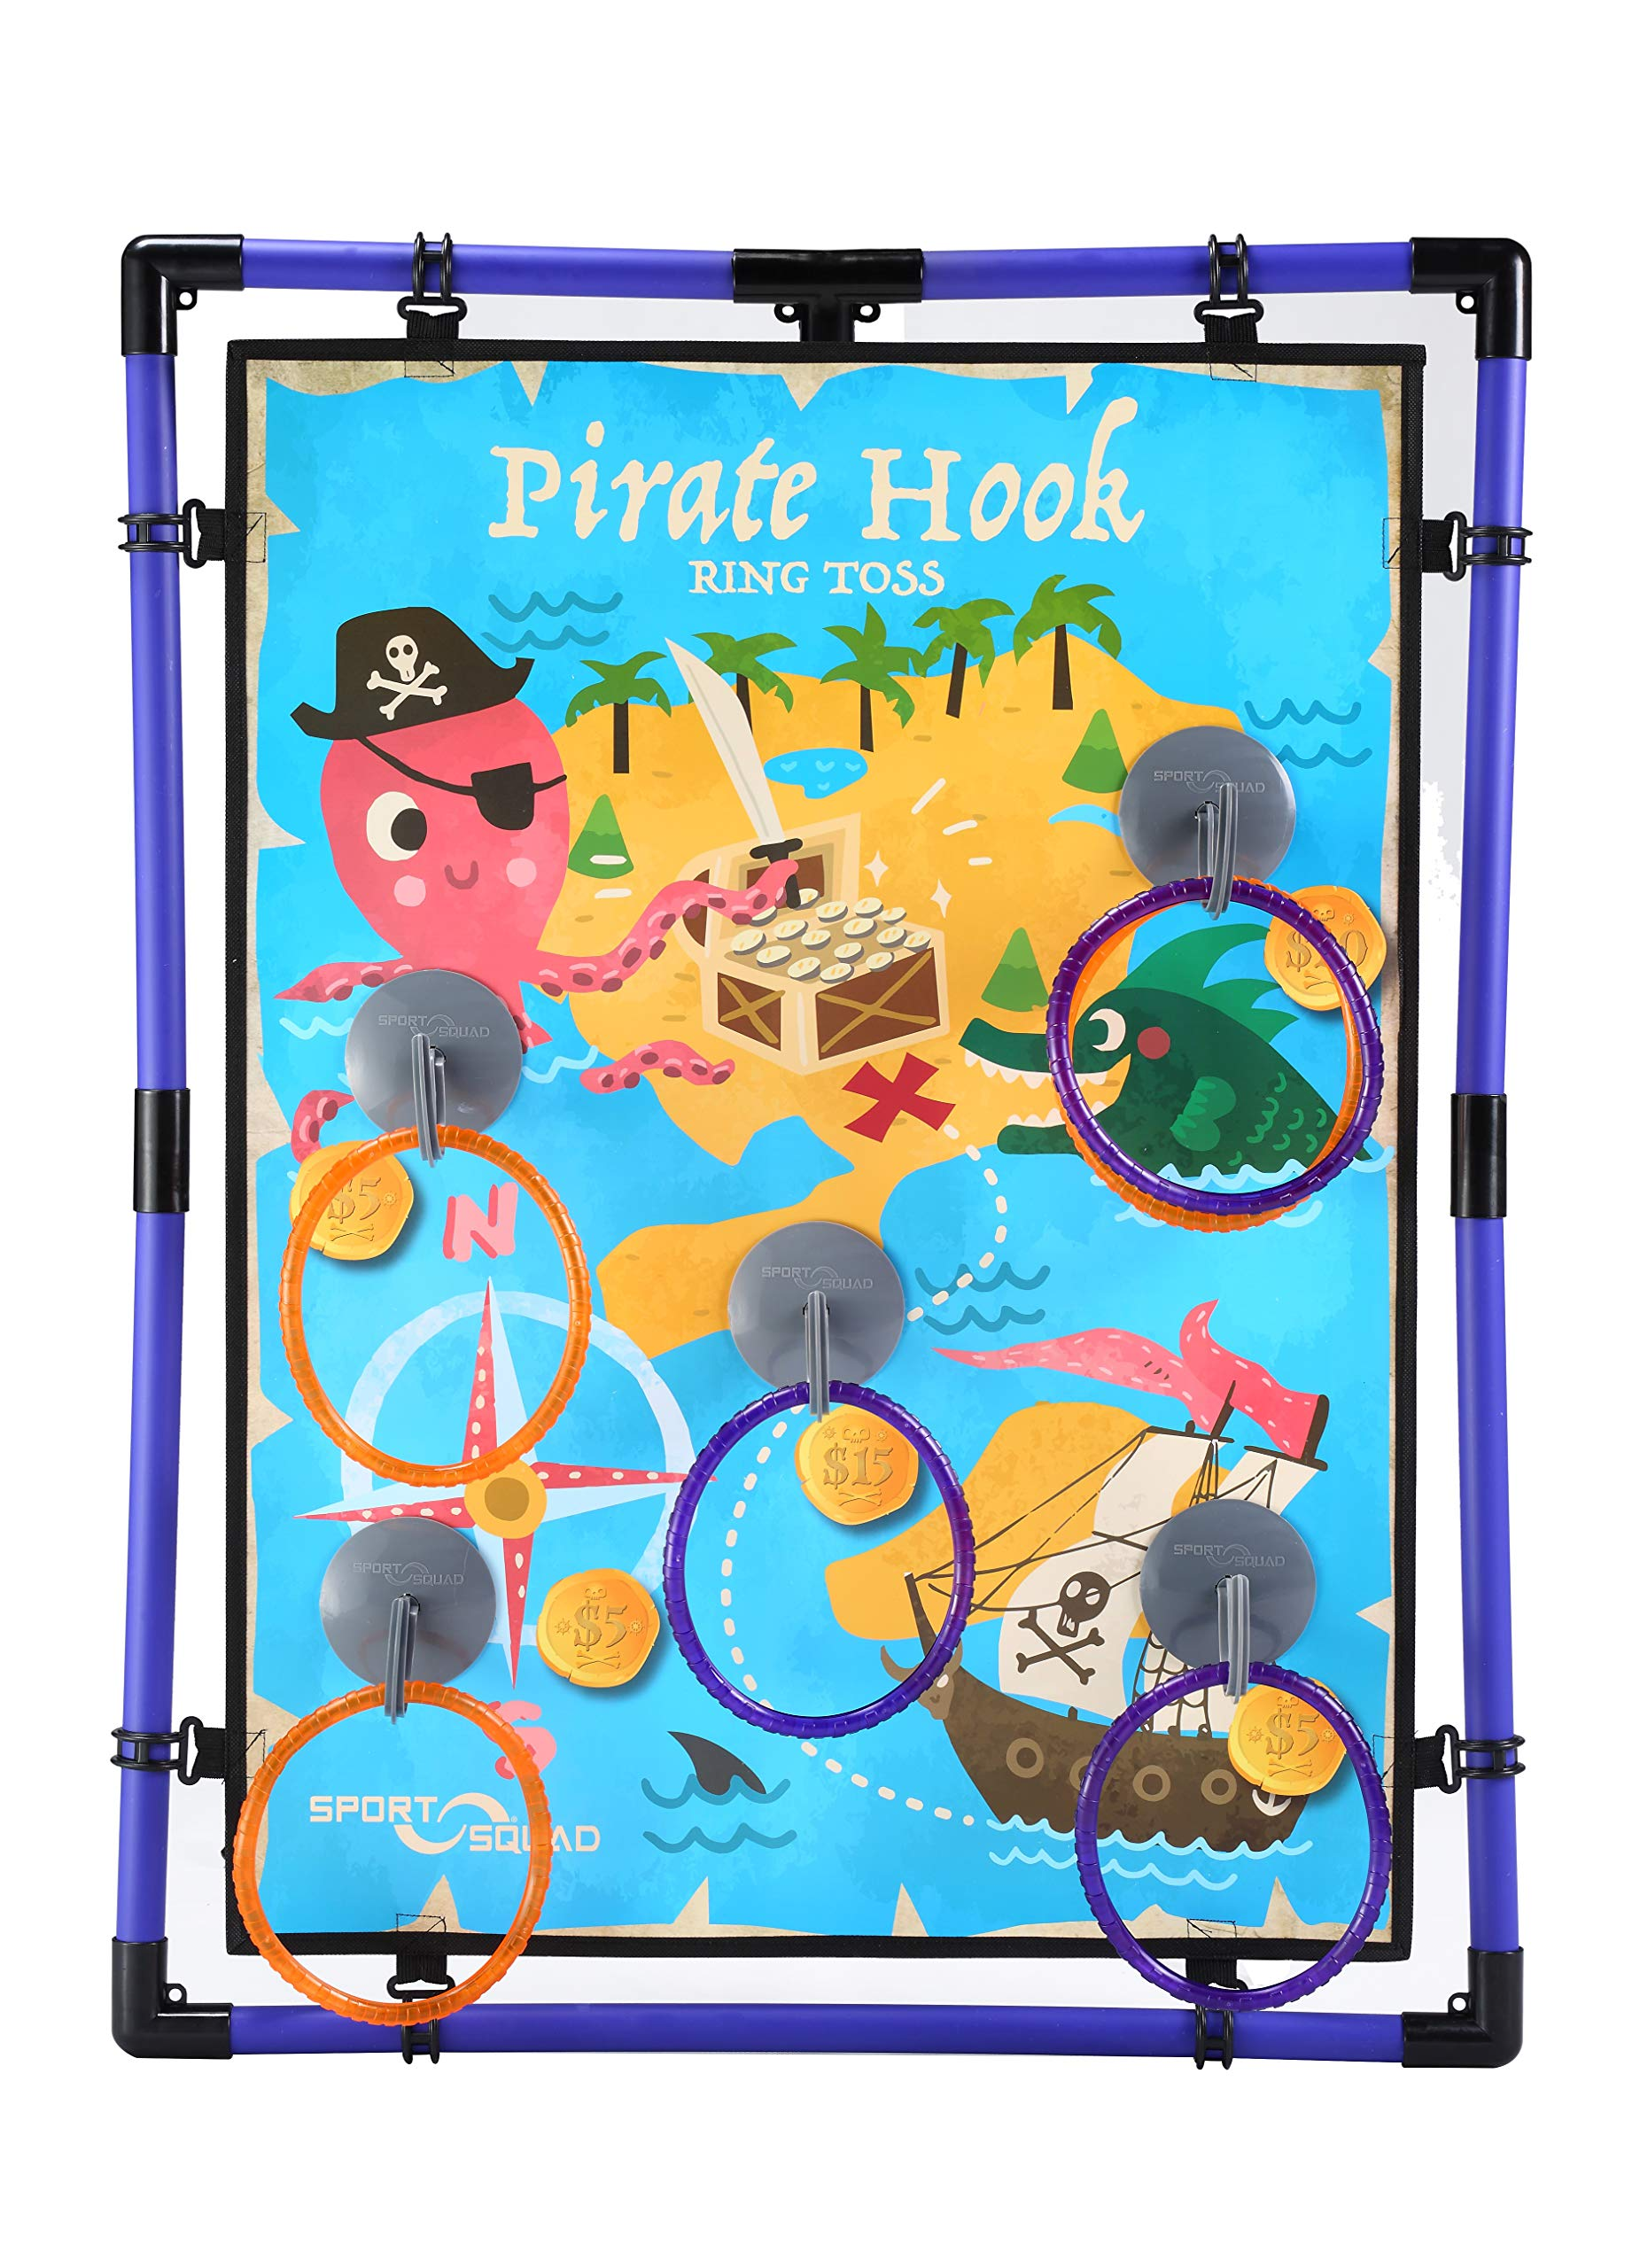 Sport Squad Pirate Hook Ring Toss - Indoor & Outdoor Ring Toss Games for Kids and Adults - Portable Pirates Ring Toss Game - Great for Pirate Themed Birthday Parties - Incl. 3 Purple & 3 Orange Rings by Sport Squad